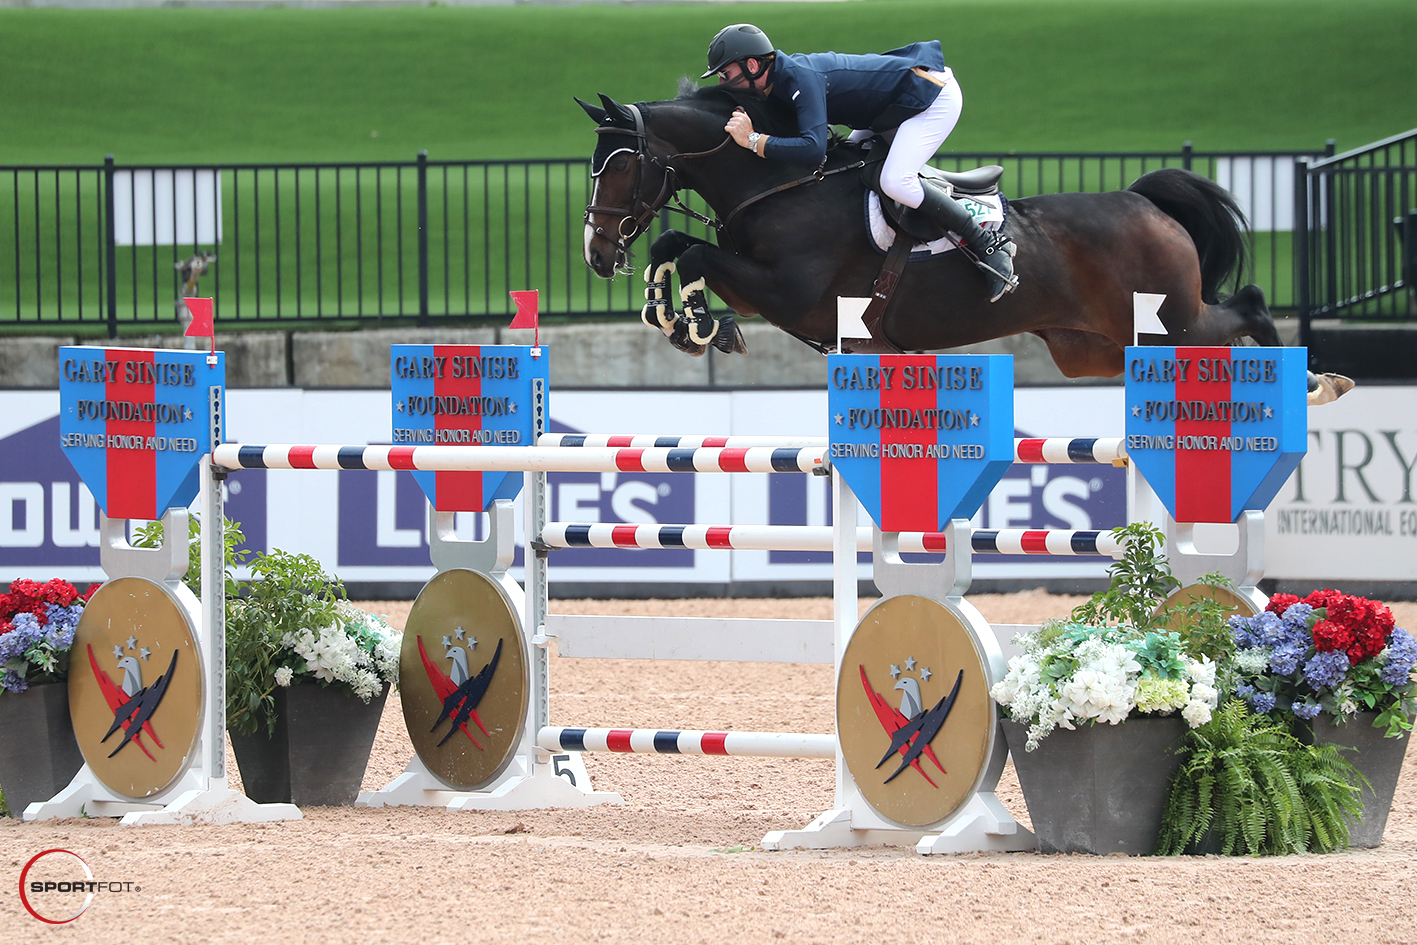 Daniel Coyle Wins His First FEI Class at Tryon